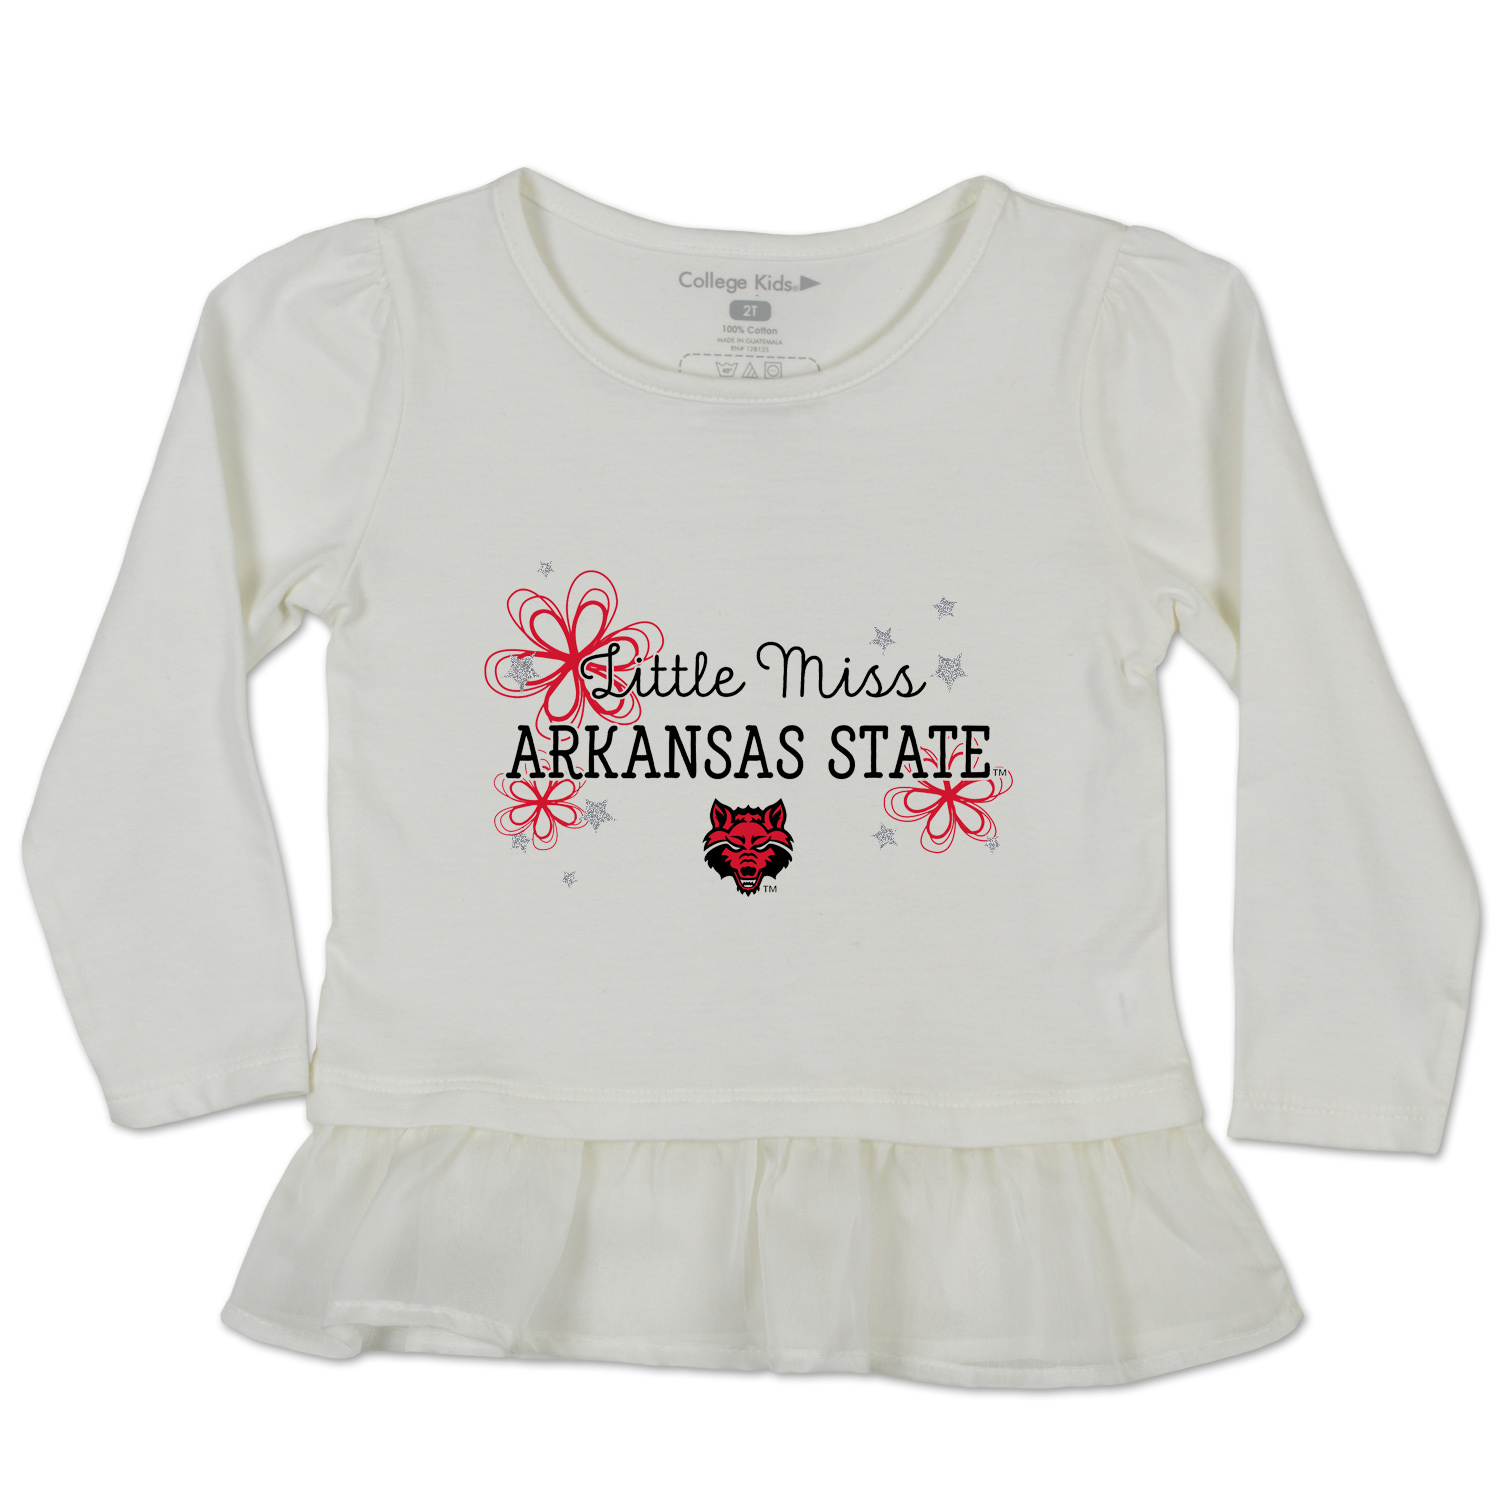 Little Miss Arkansas State Toddler Shirt